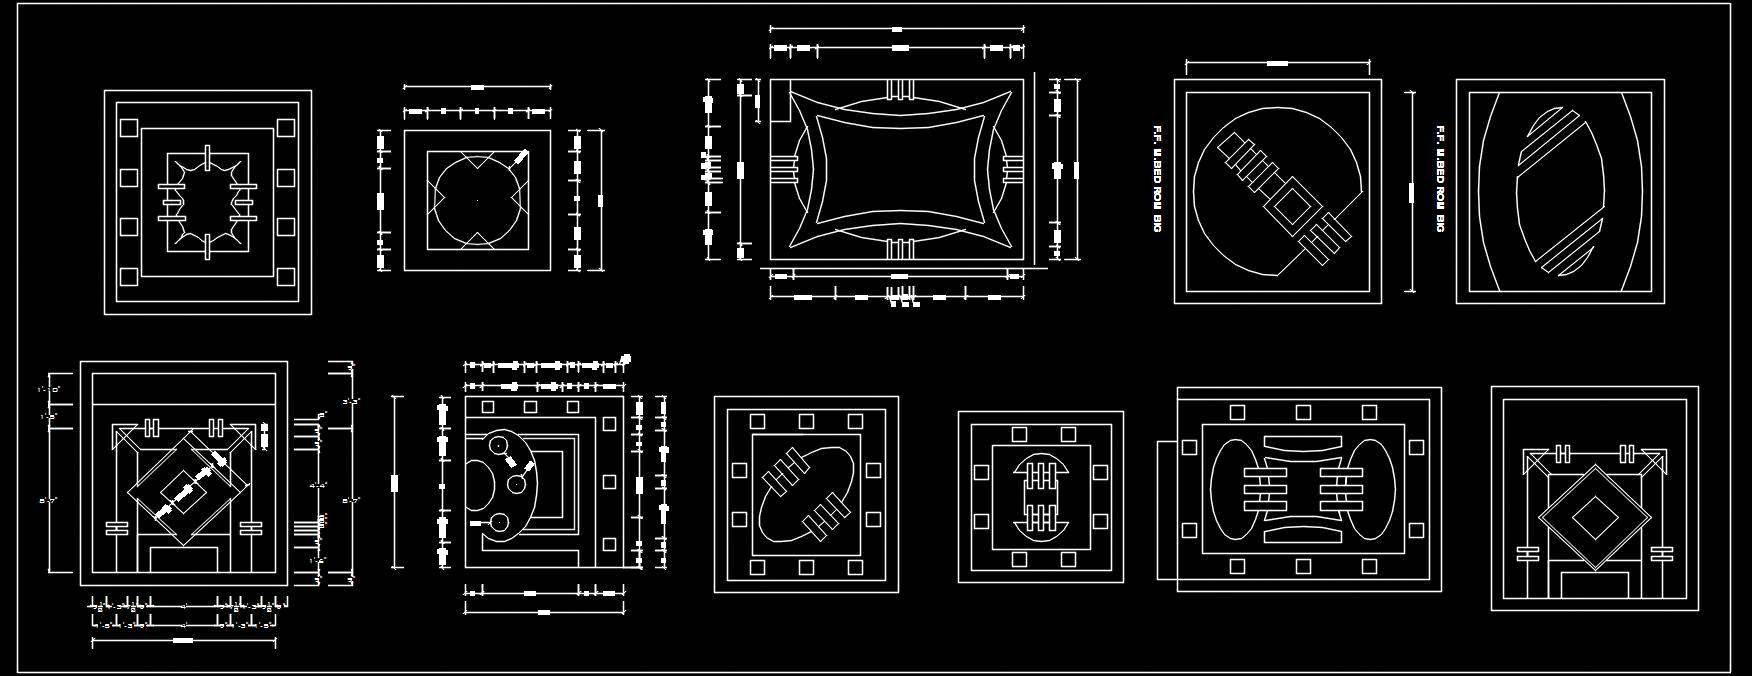 False Ceiling Design Autocad blocks dwg free download ...